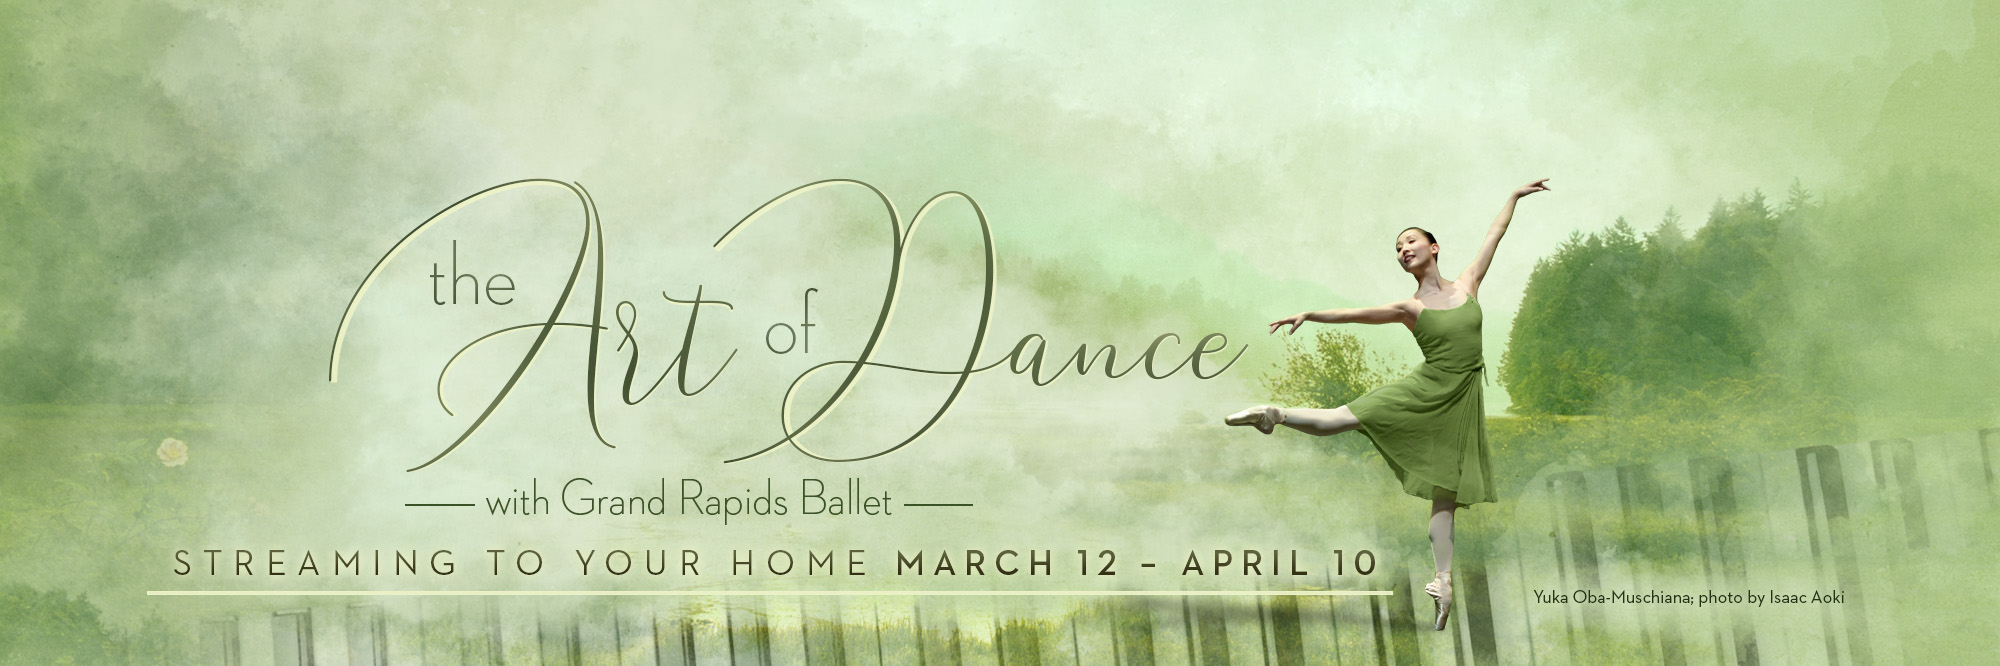 The Art of the Dance